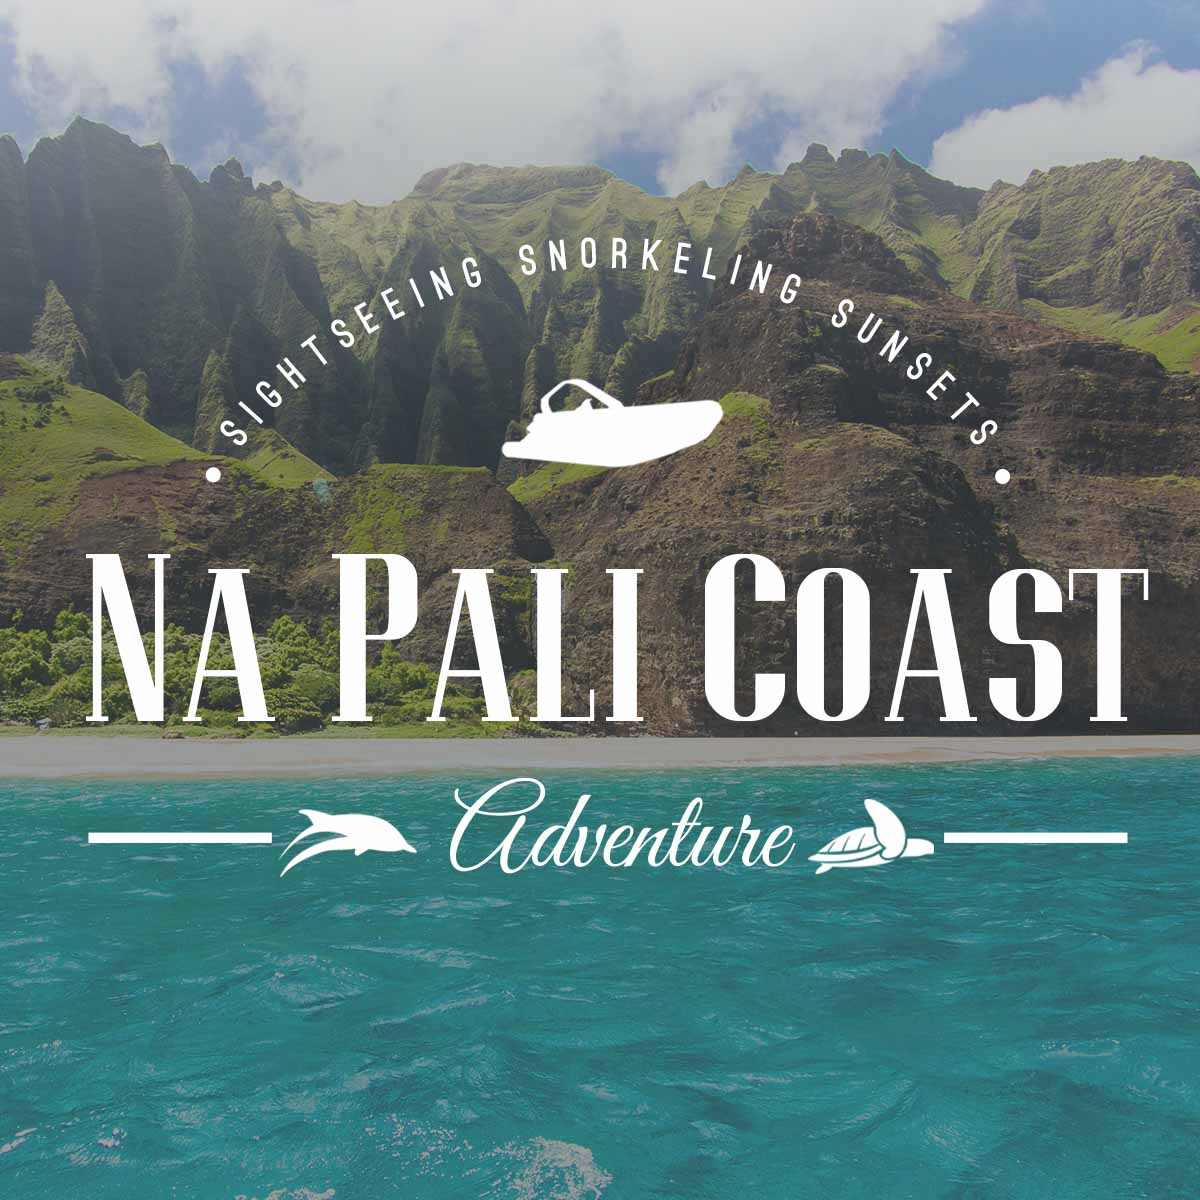 Na Pali Coast Adventures.jpg